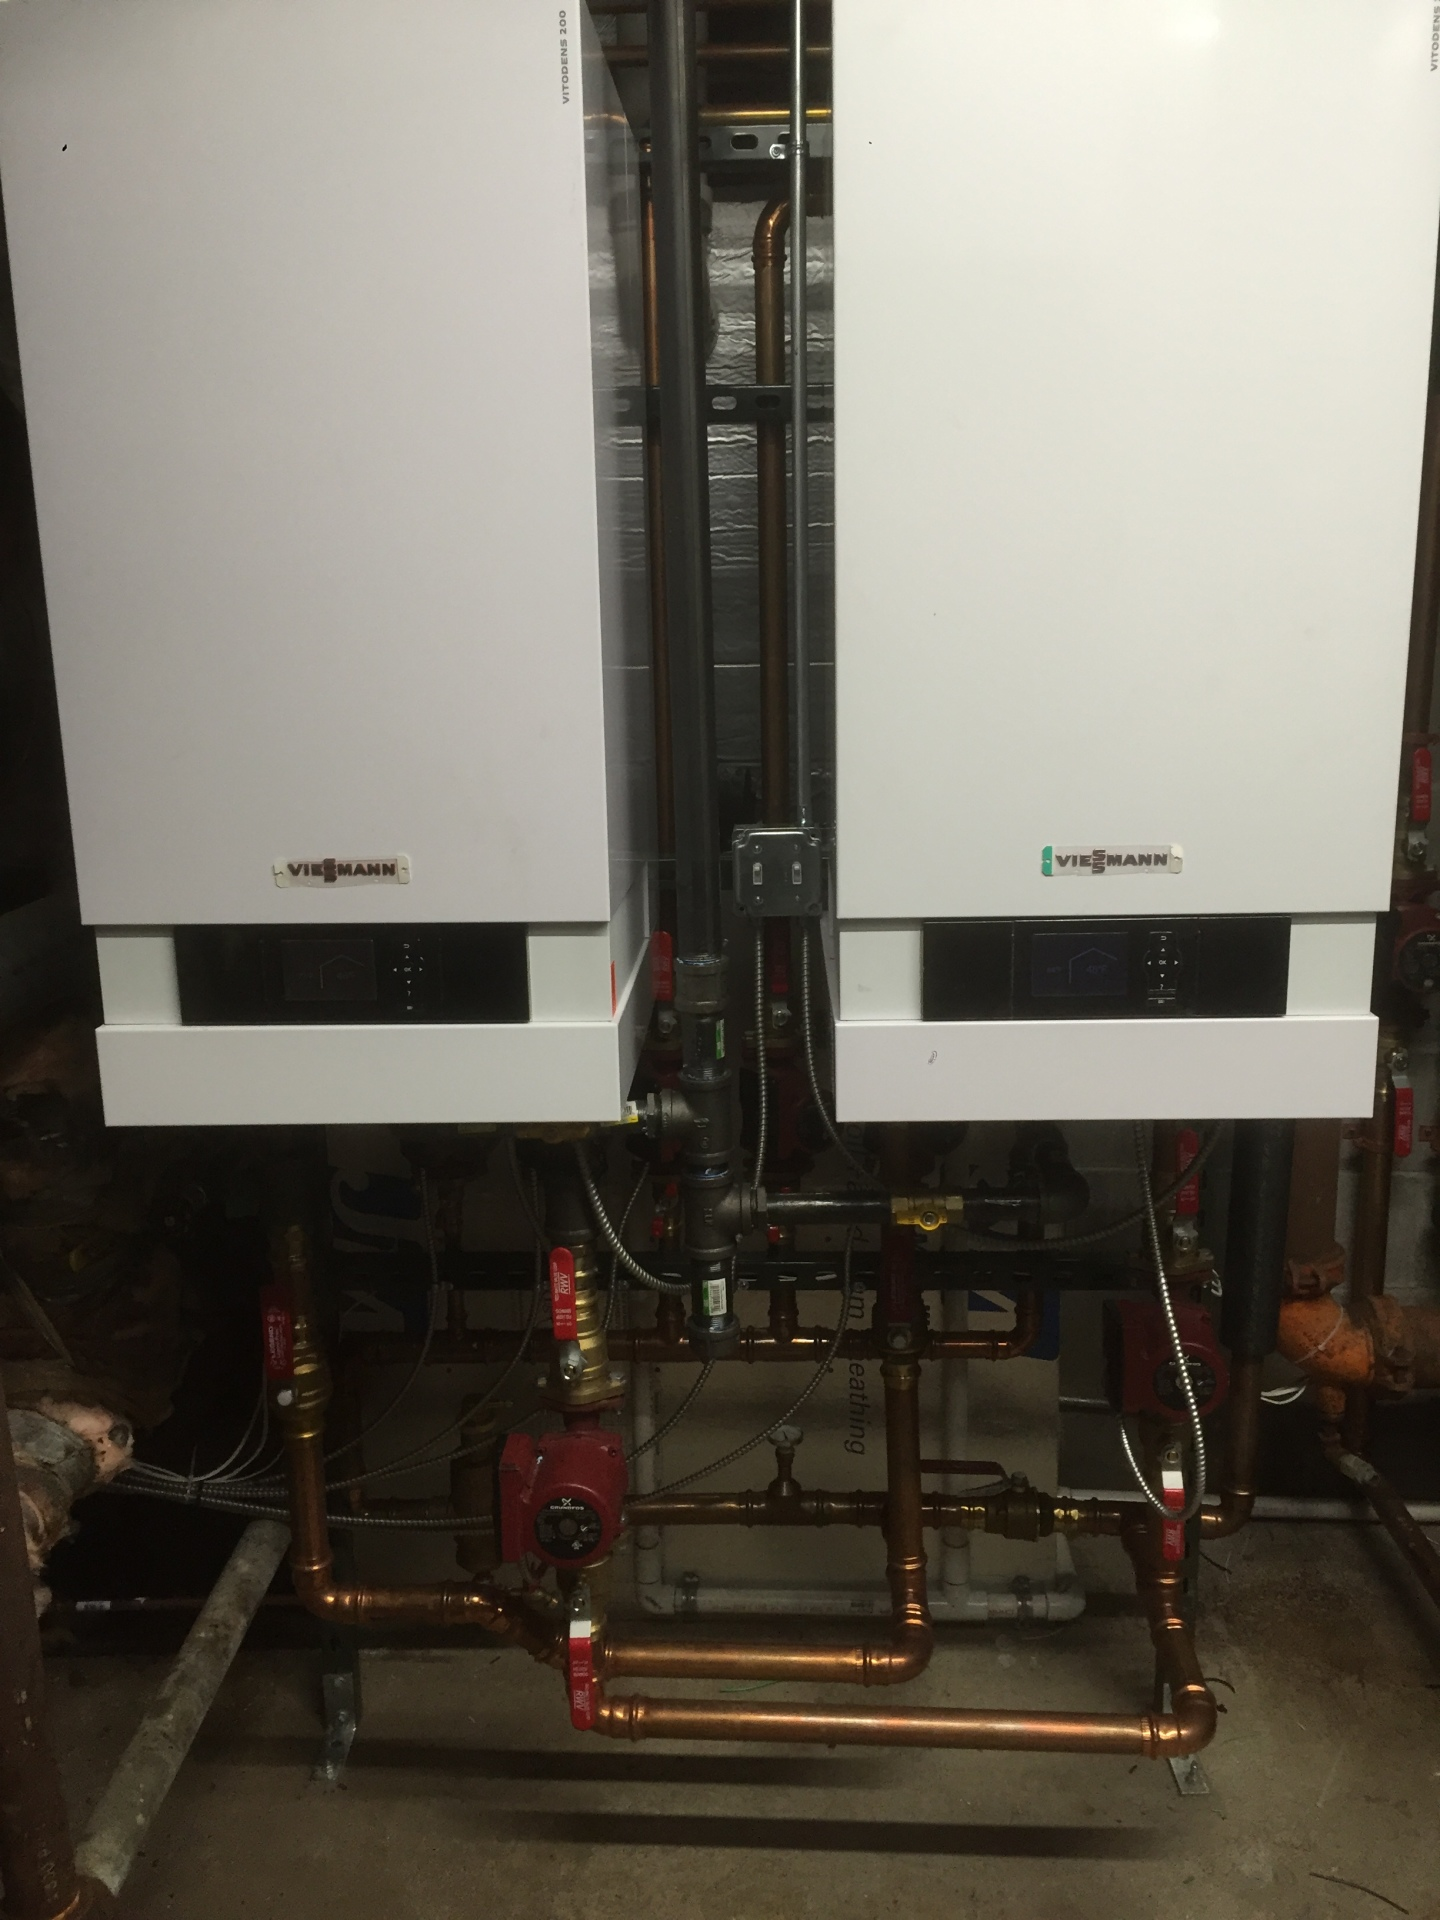 Viessmann Vitodens 200 for pool and spa heating with heat exchangers